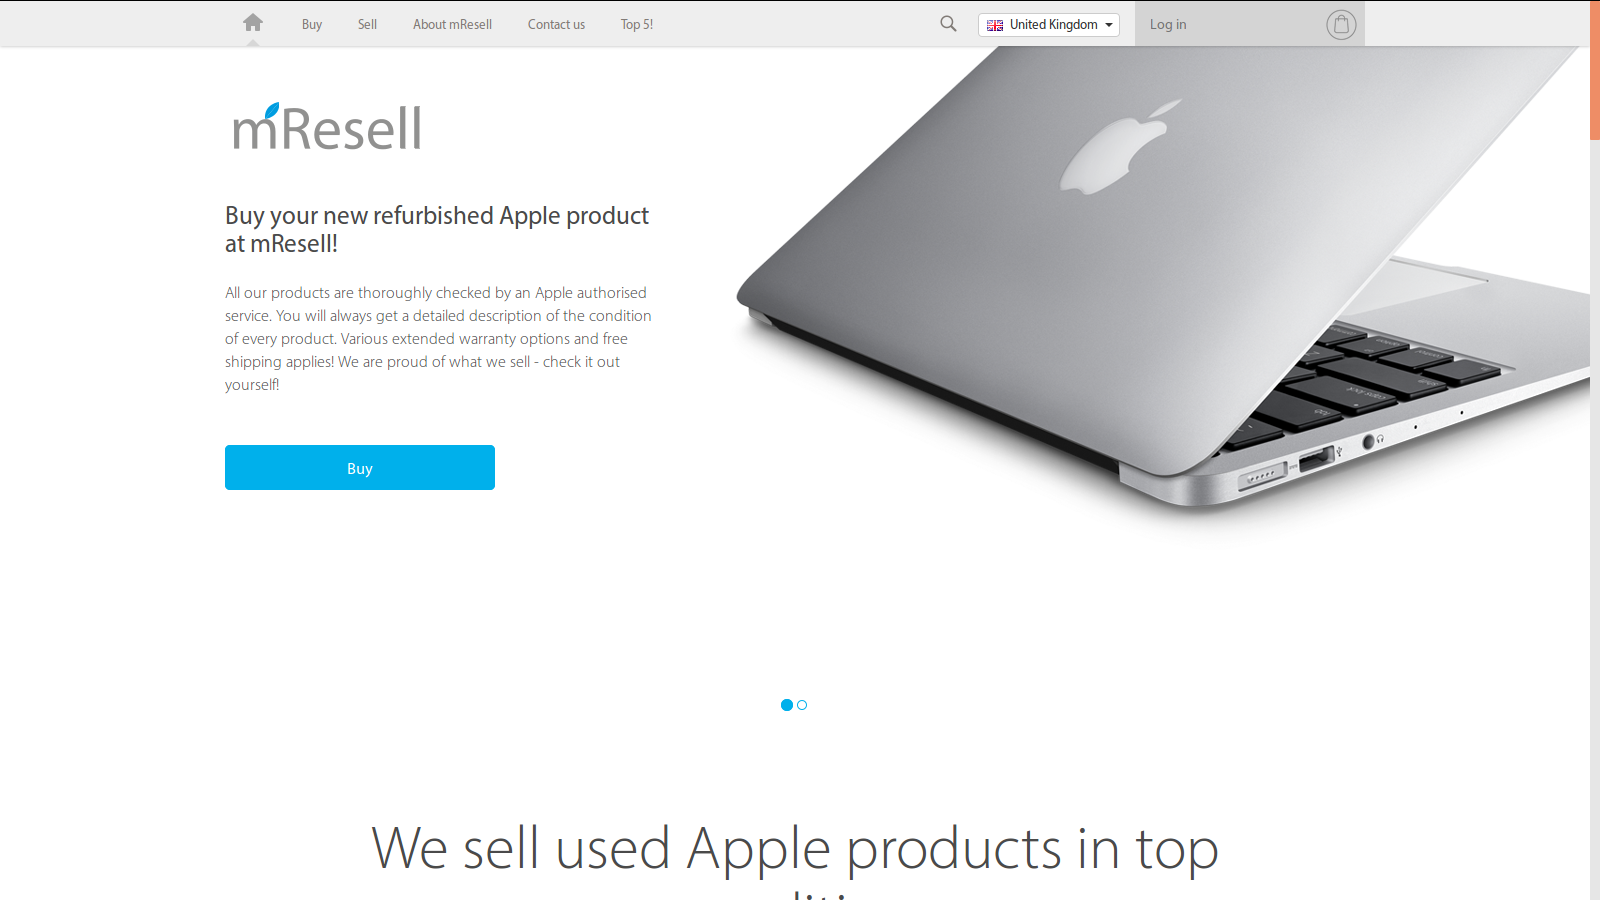 Apple products apple products png - Apple Products Apple Products Png 38